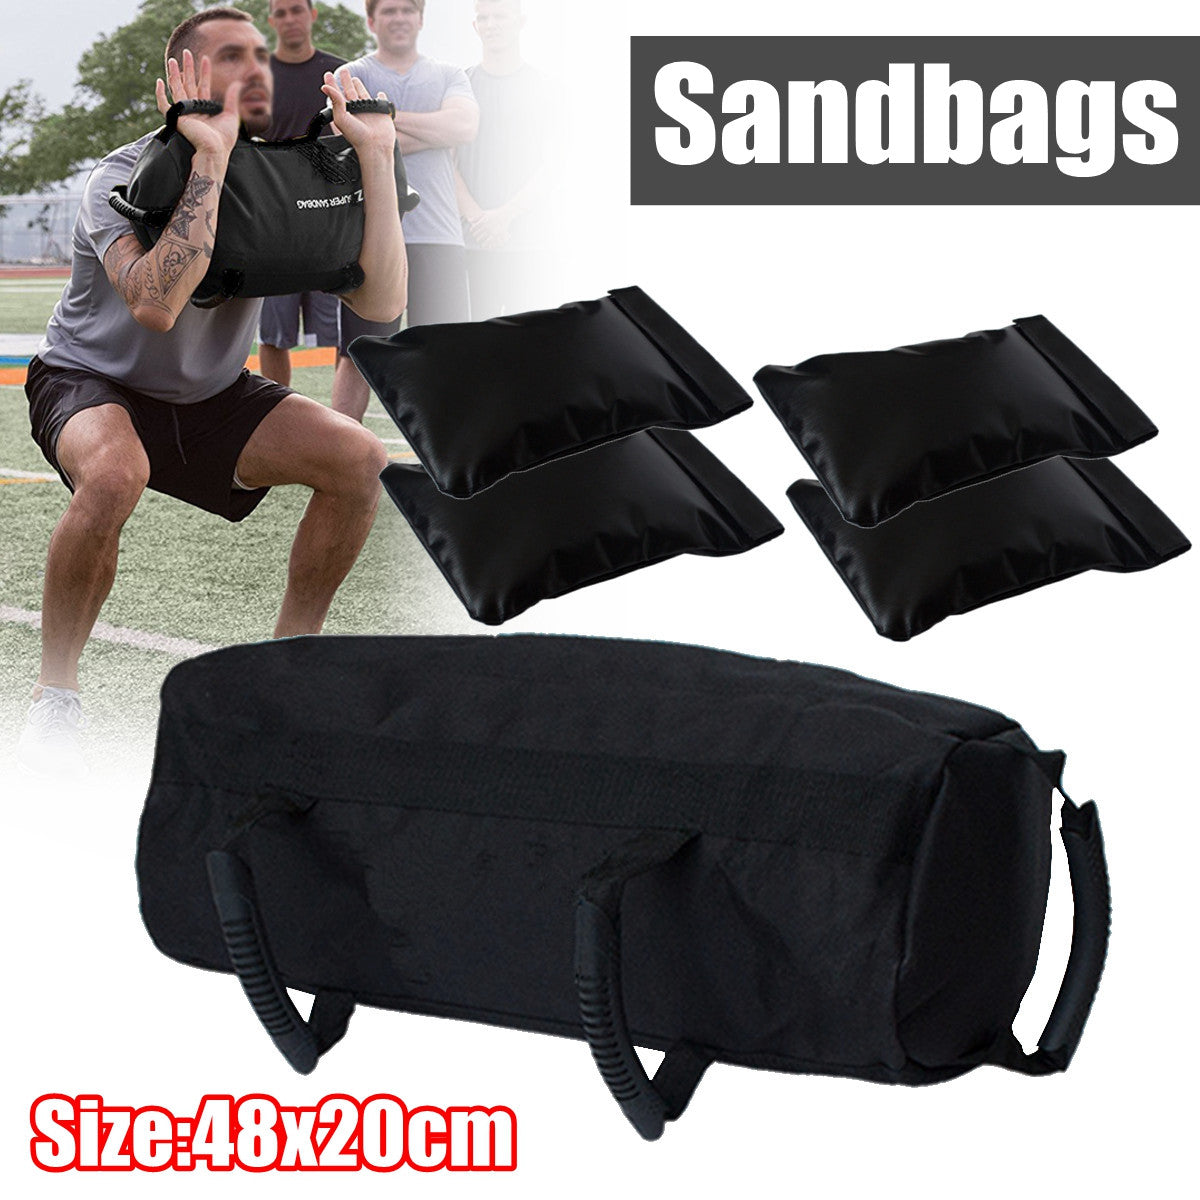 Heavy Duty Sports Fitness Sandbag